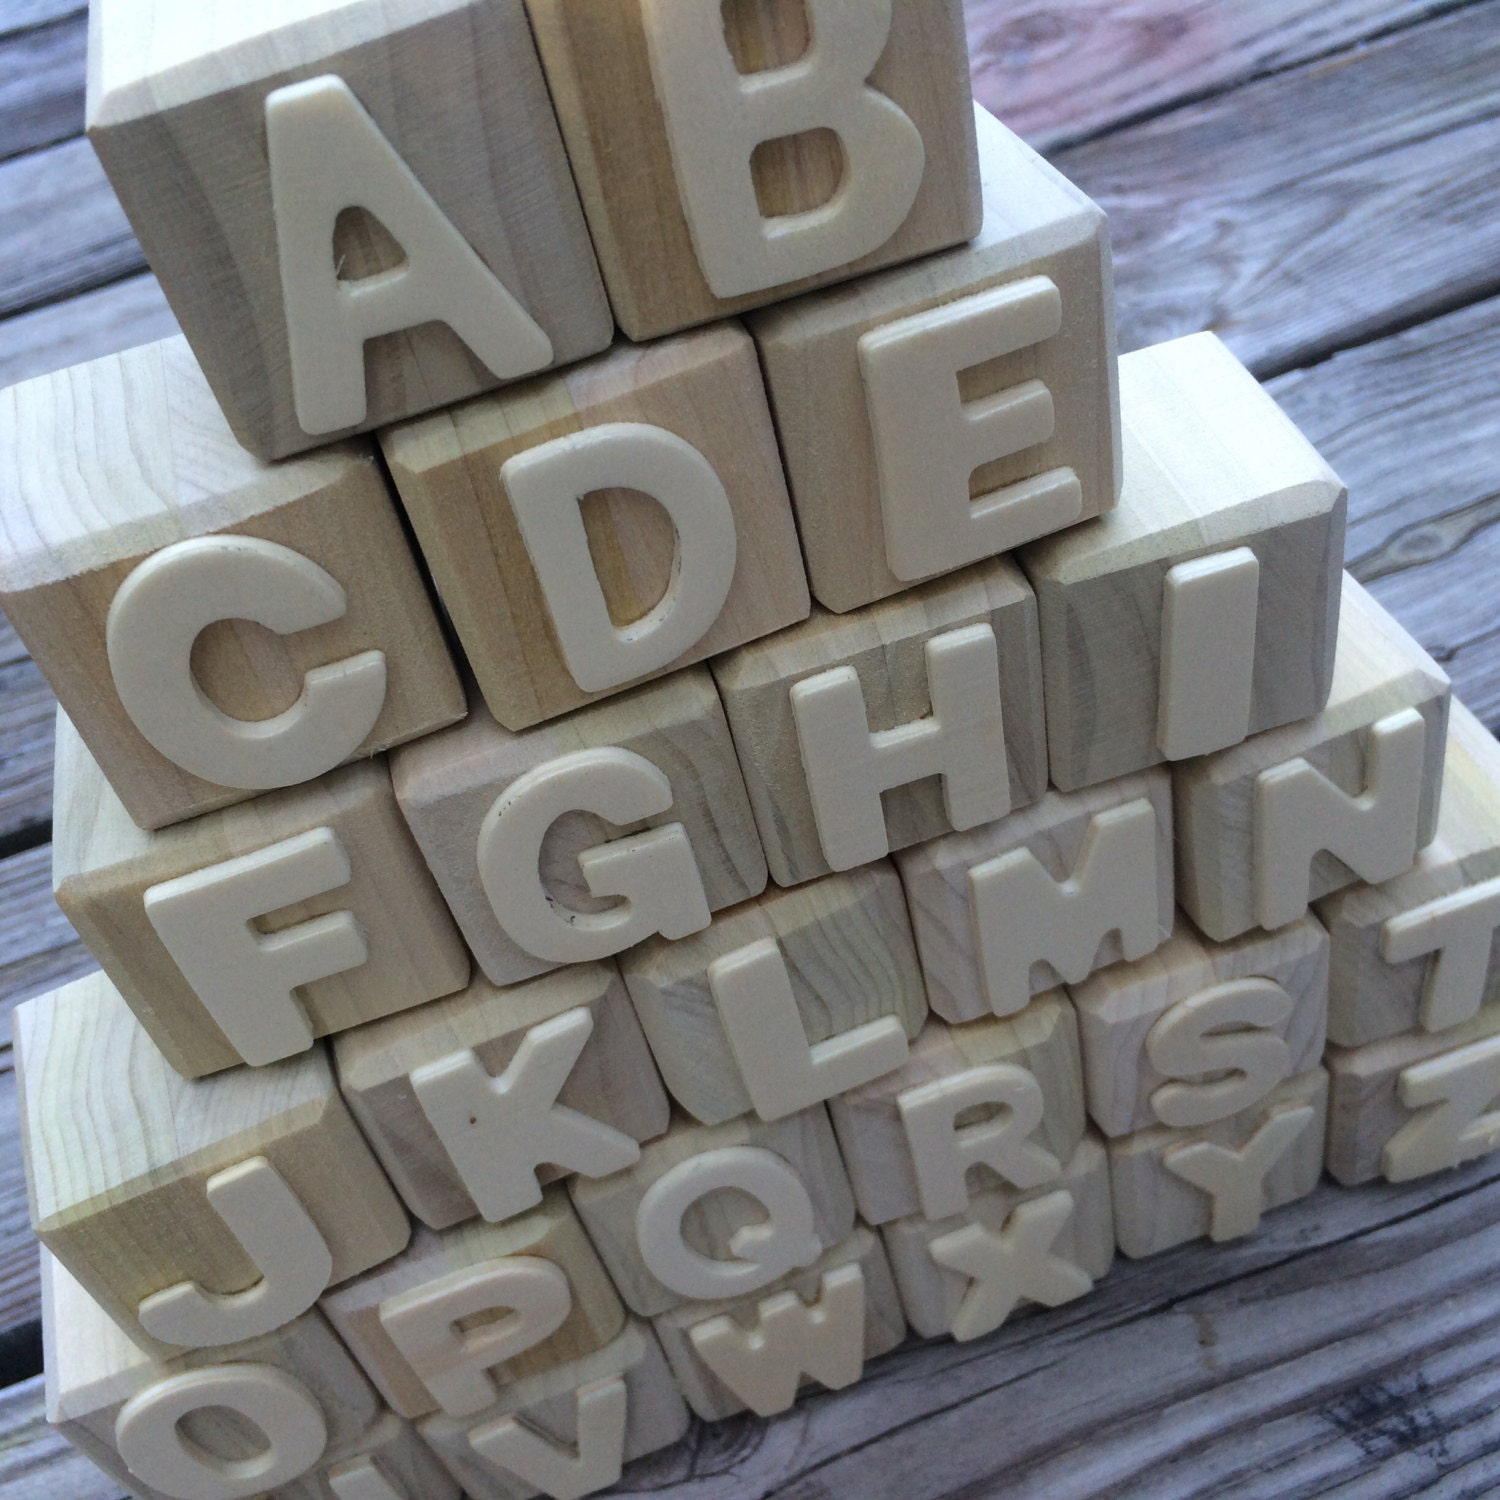 wood block letters alphabet blocks abc blocks wooden letters diy wooden etsy 25665 | il fullxfull.792217043 5k9q